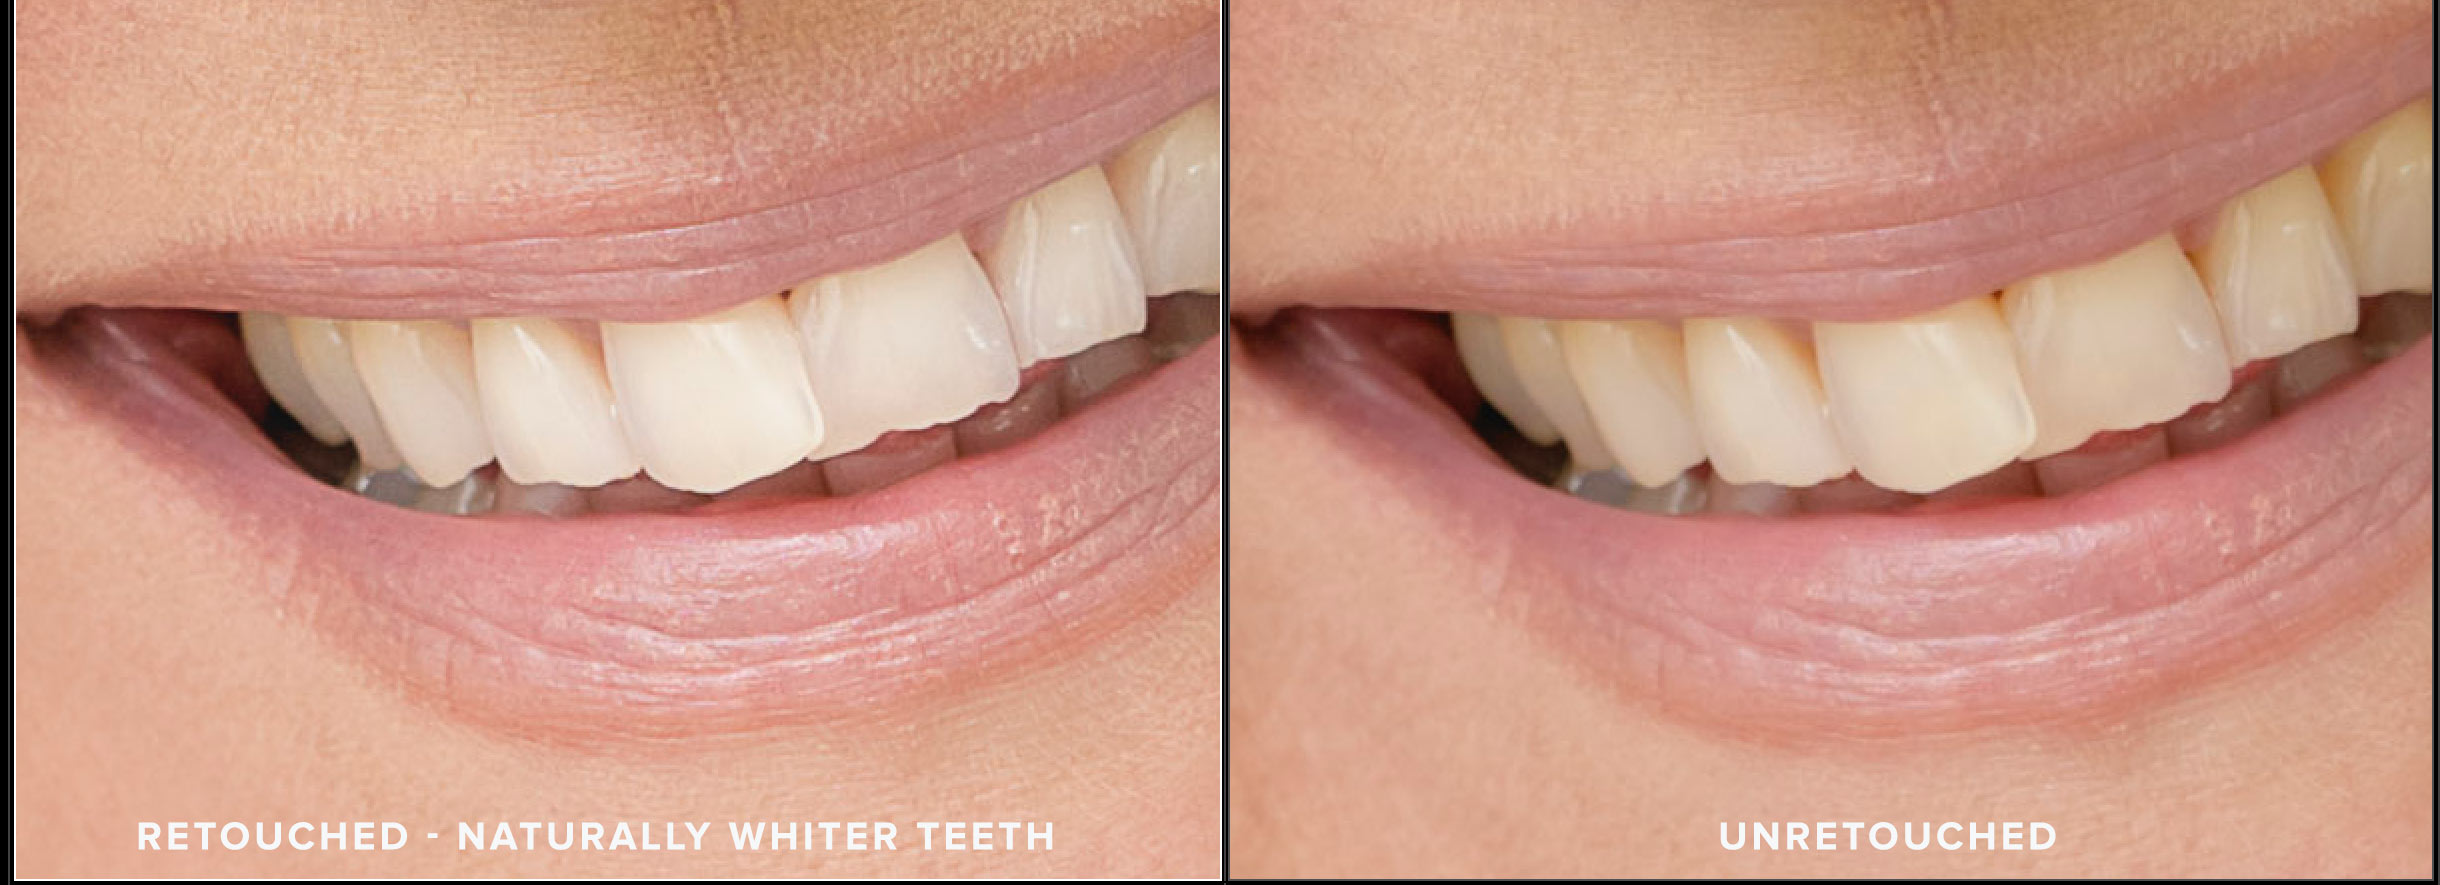 Image of retouched and unretouched teeth. Photo by N. Lalor Photography in Greenwich, Connecticut.